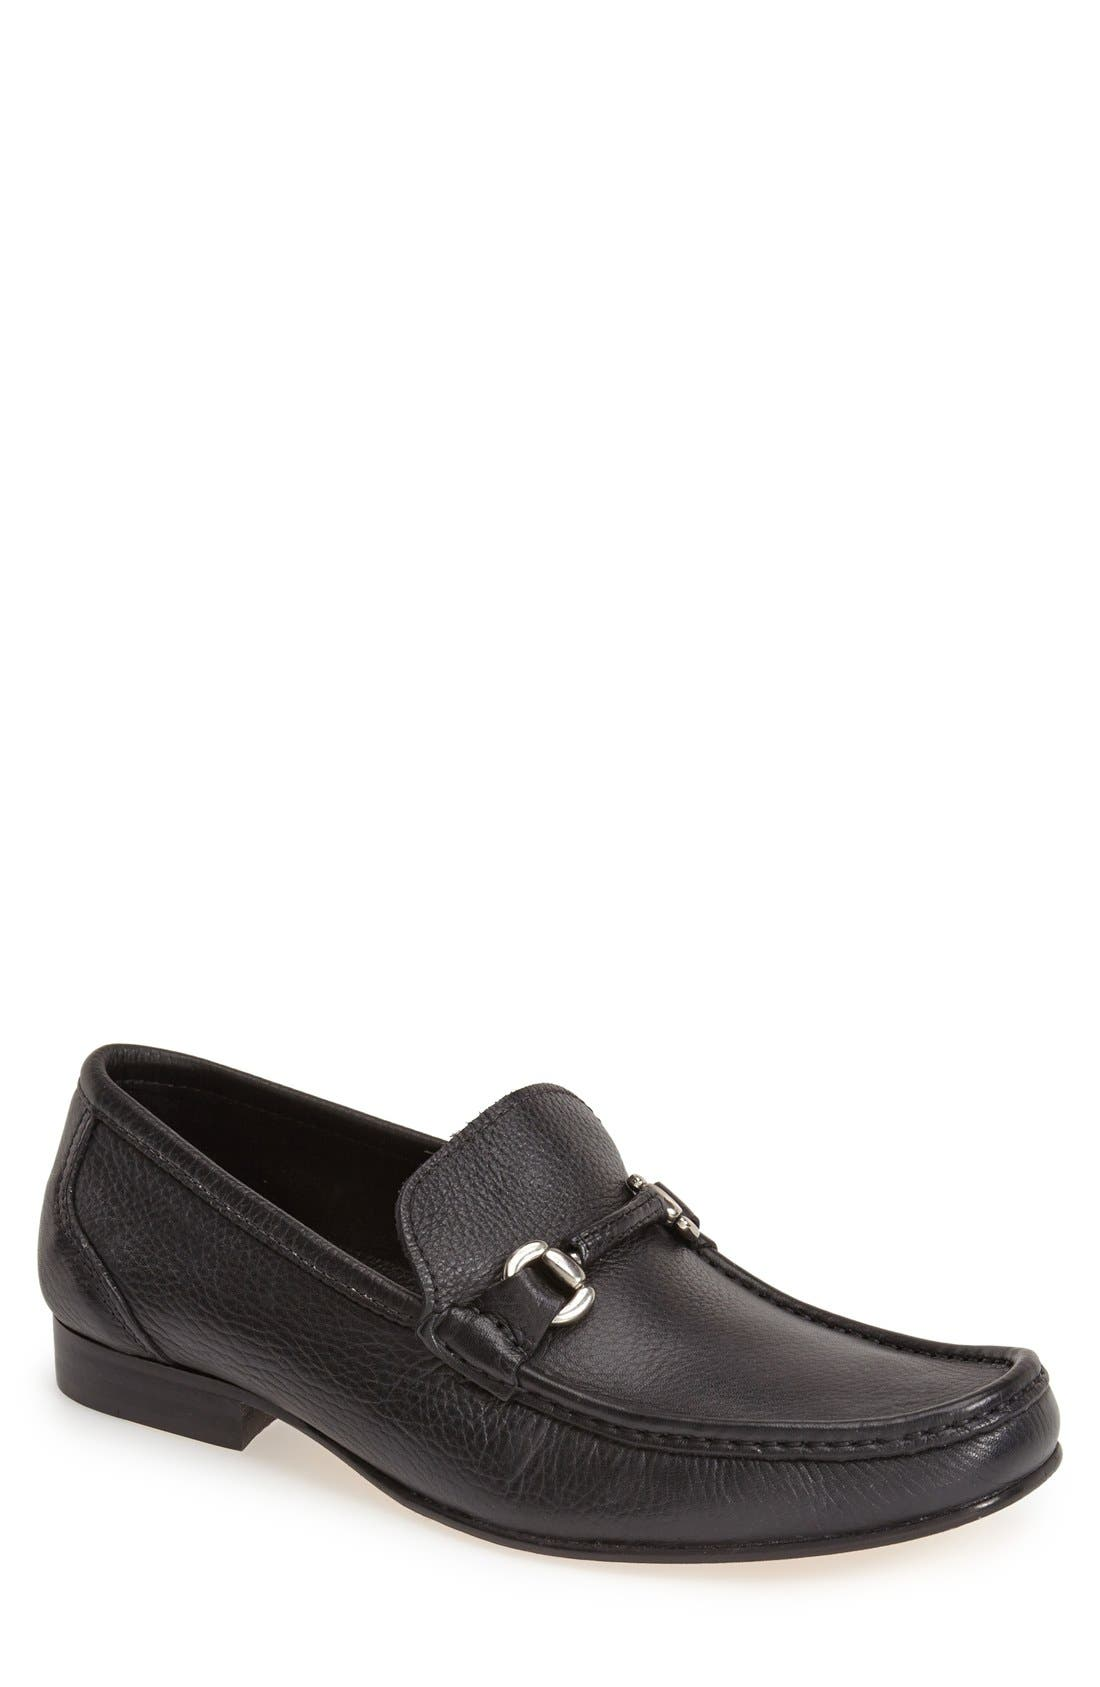 Alternate Image 1 Selected - Sandro Moscoloni 'San Remo' Leather Bit Loafer (Men)